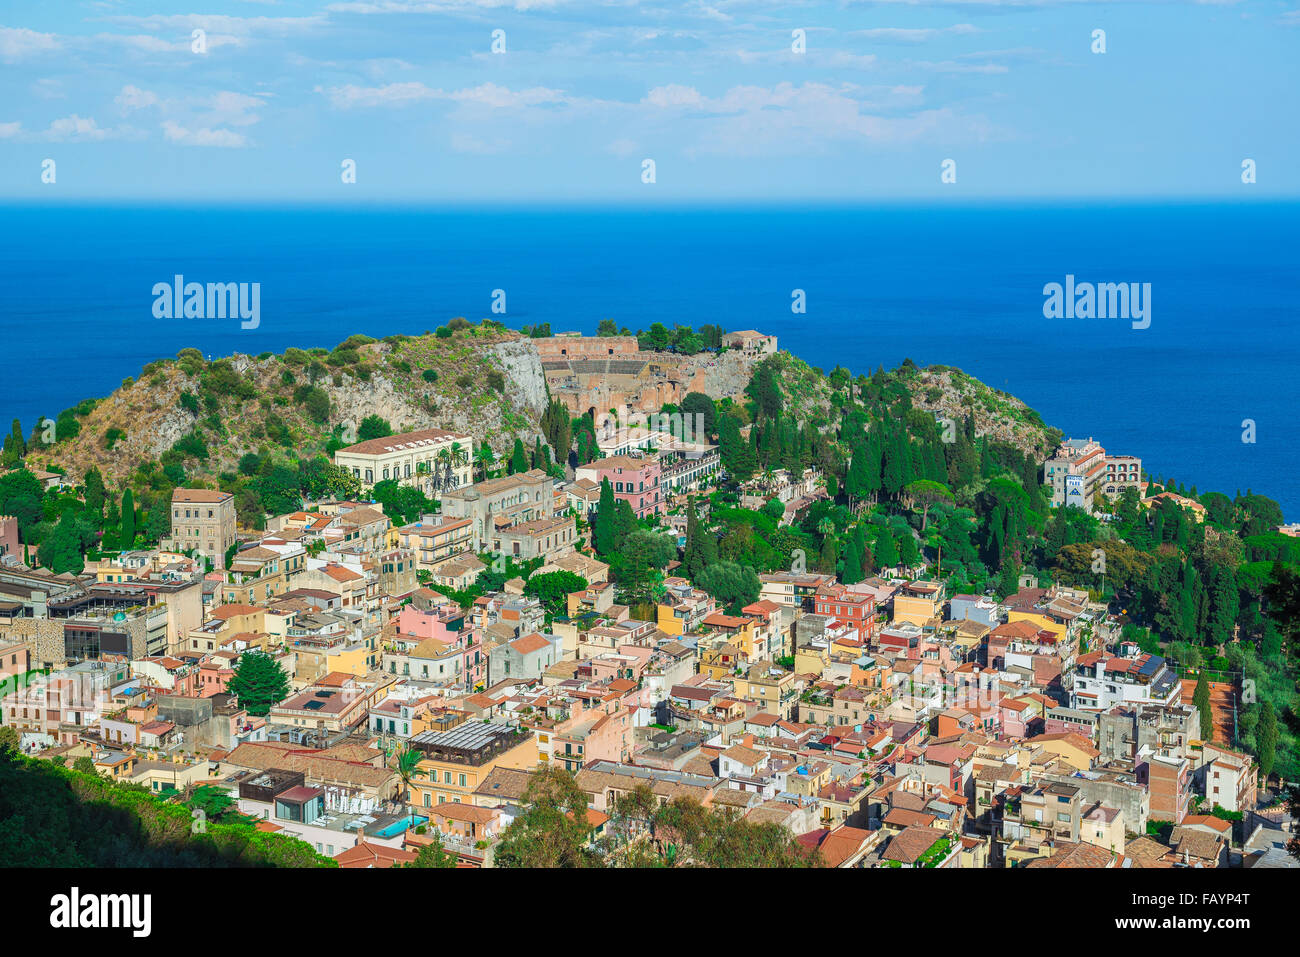 Taormina landscape Sicily, aerial cityscape view of Taormina, showing the auditorium of the ancient Greek theater - Stock Image